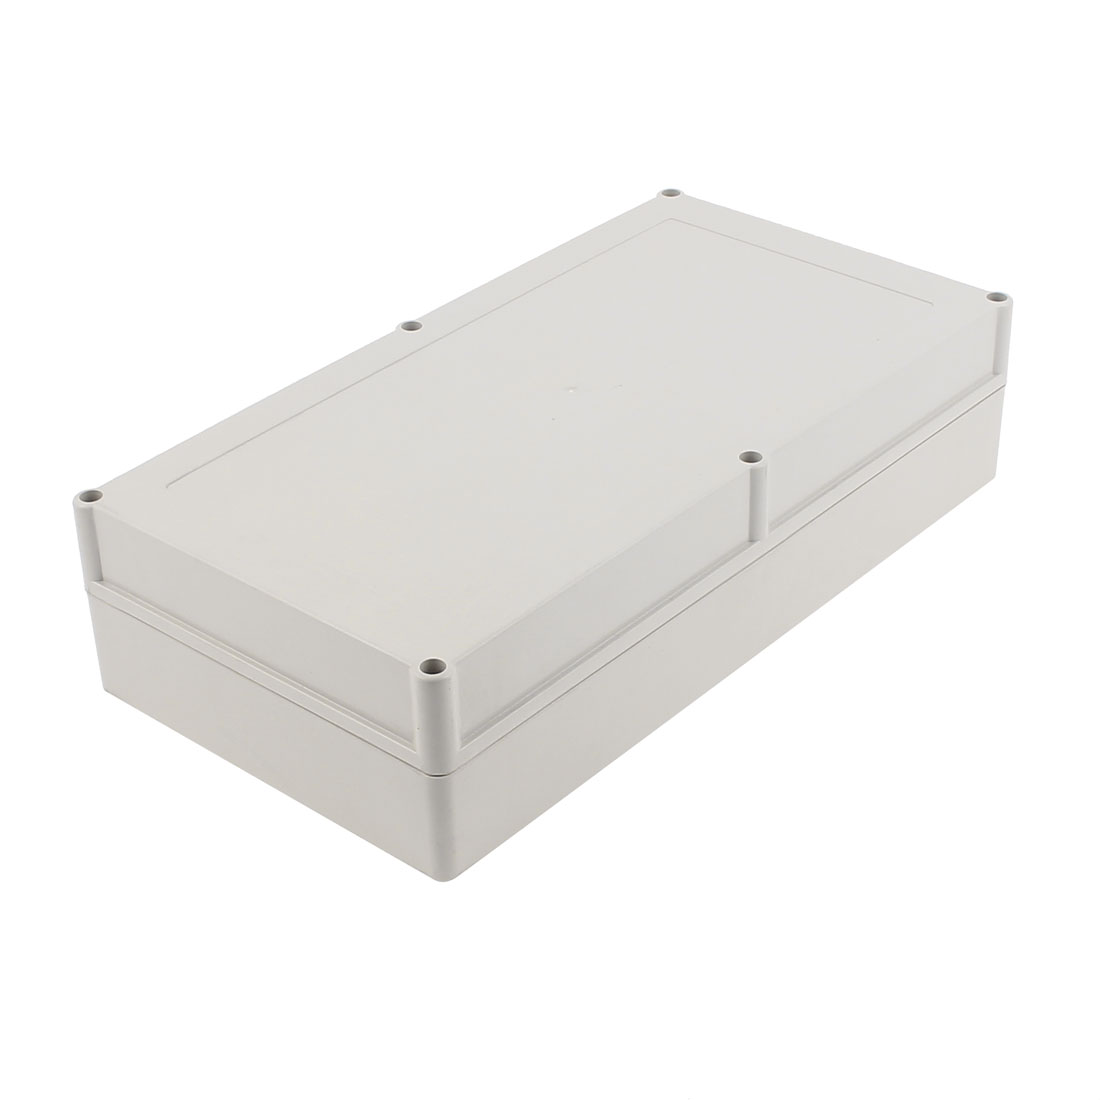 325 x 170 x 78mm Dustproof IP65 Junction Box Terminal Connection Box Enclosure